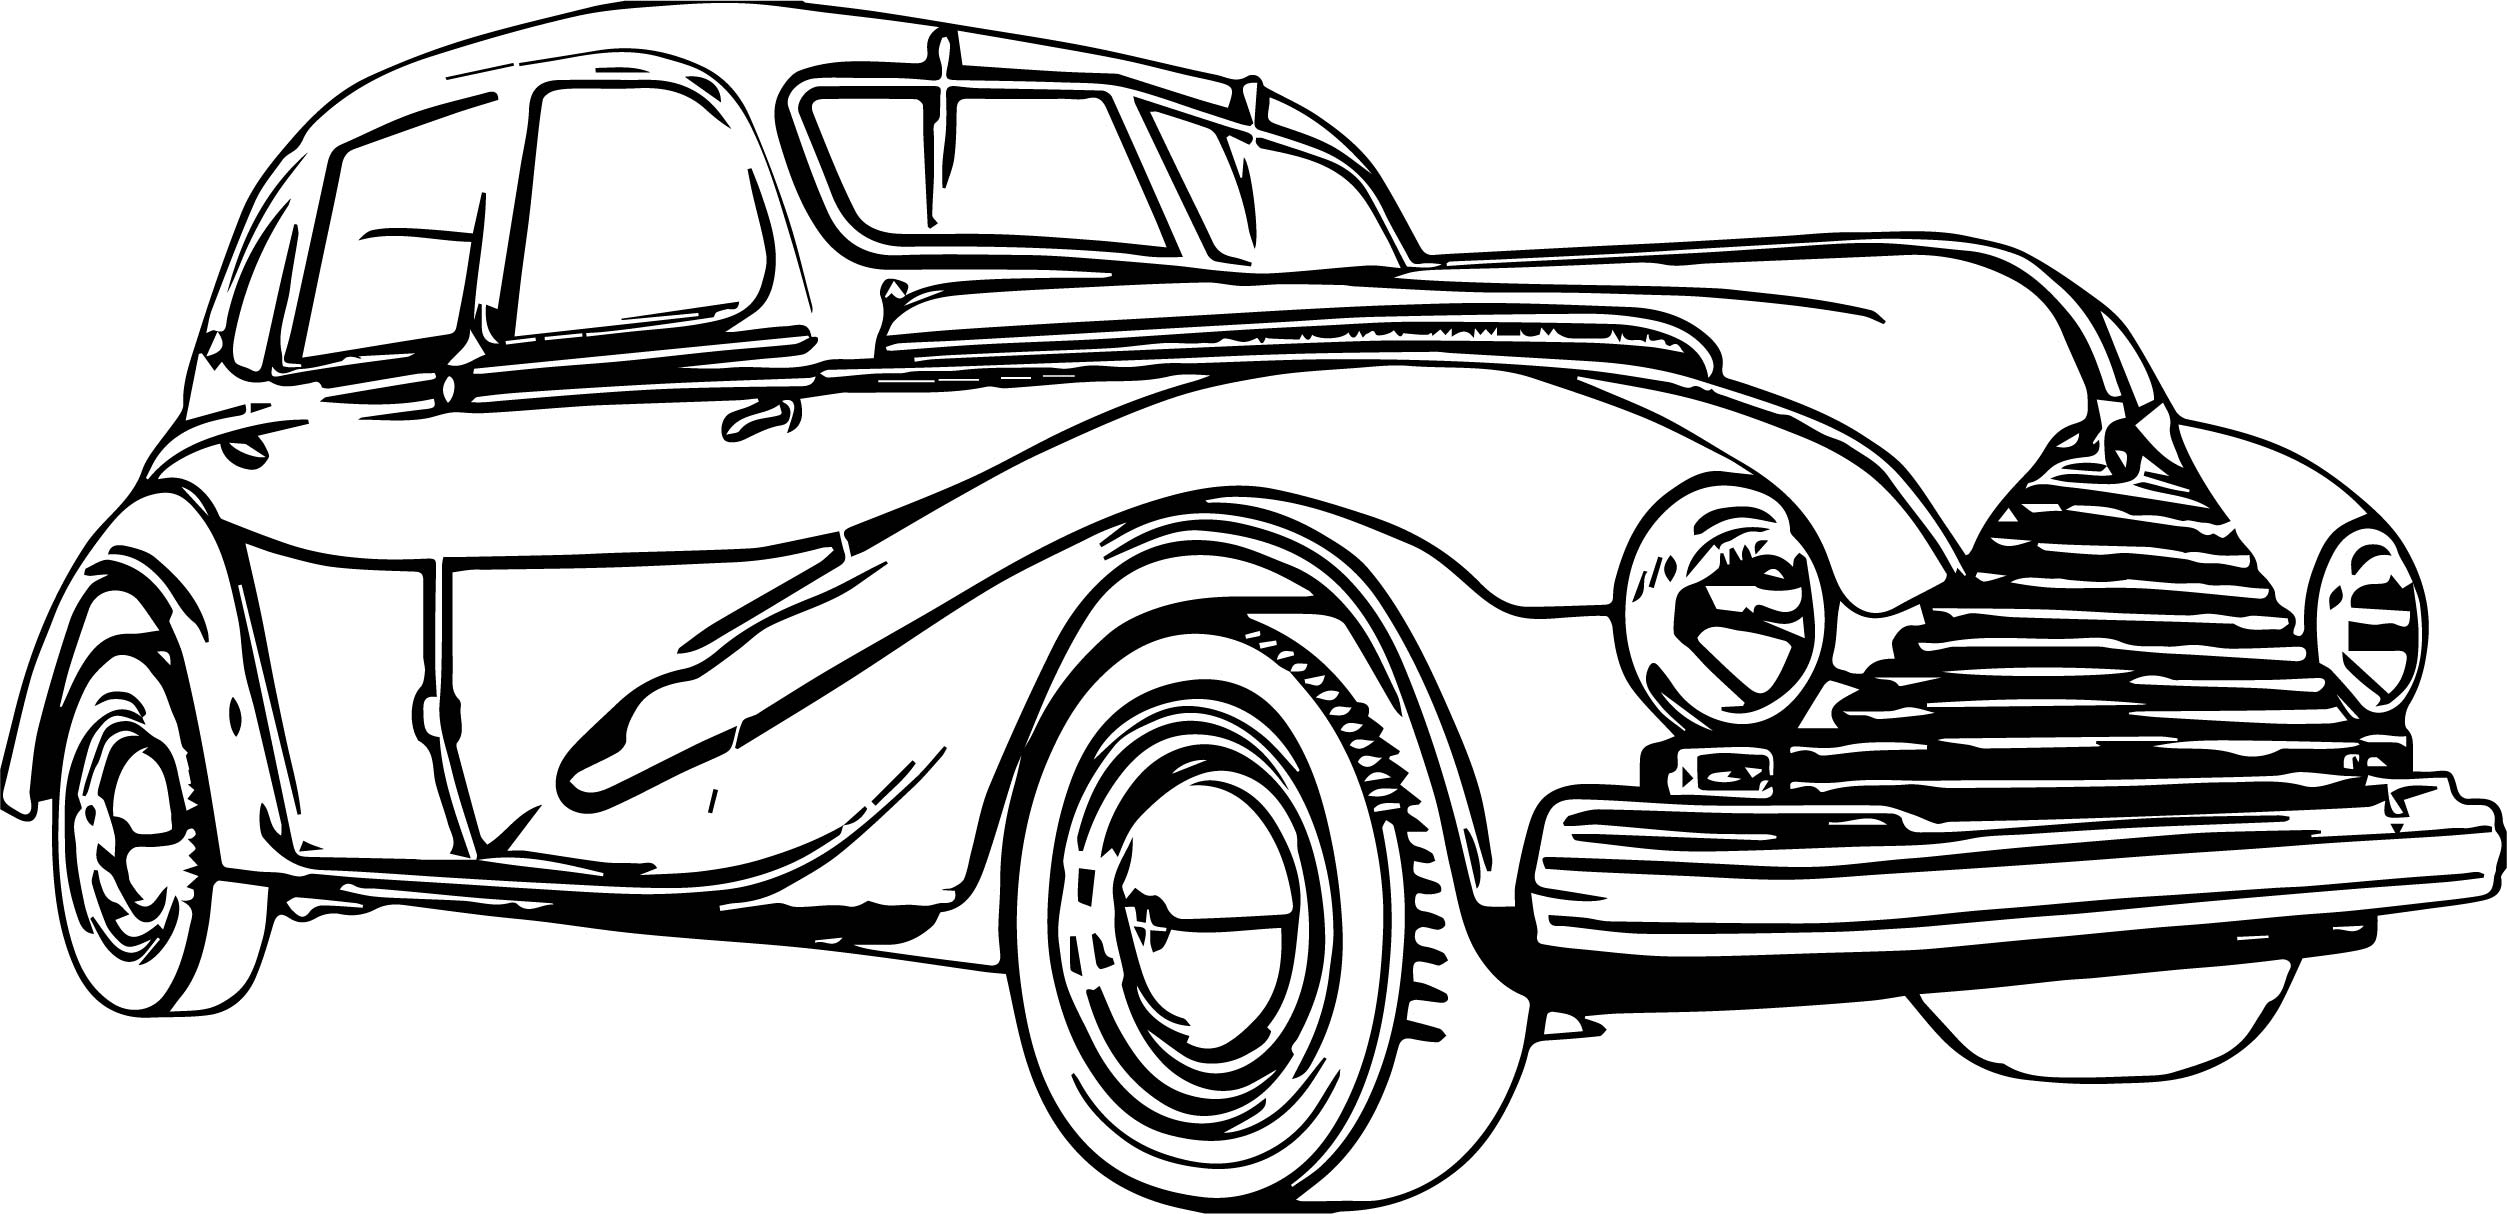 little cars coloring pages - photo#8